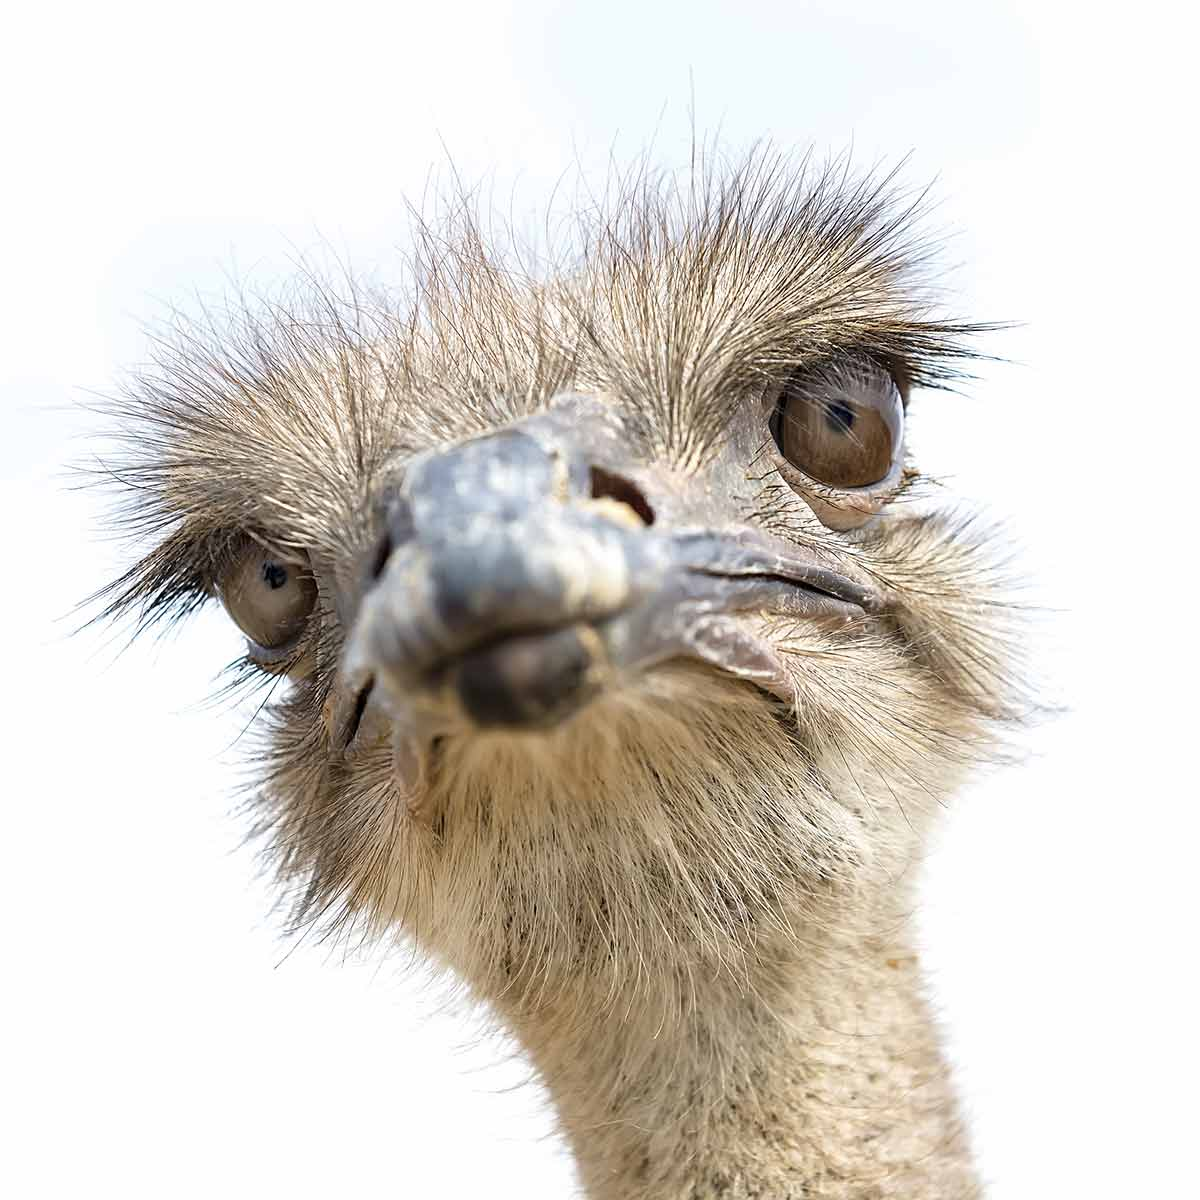 Ostrich paying attention